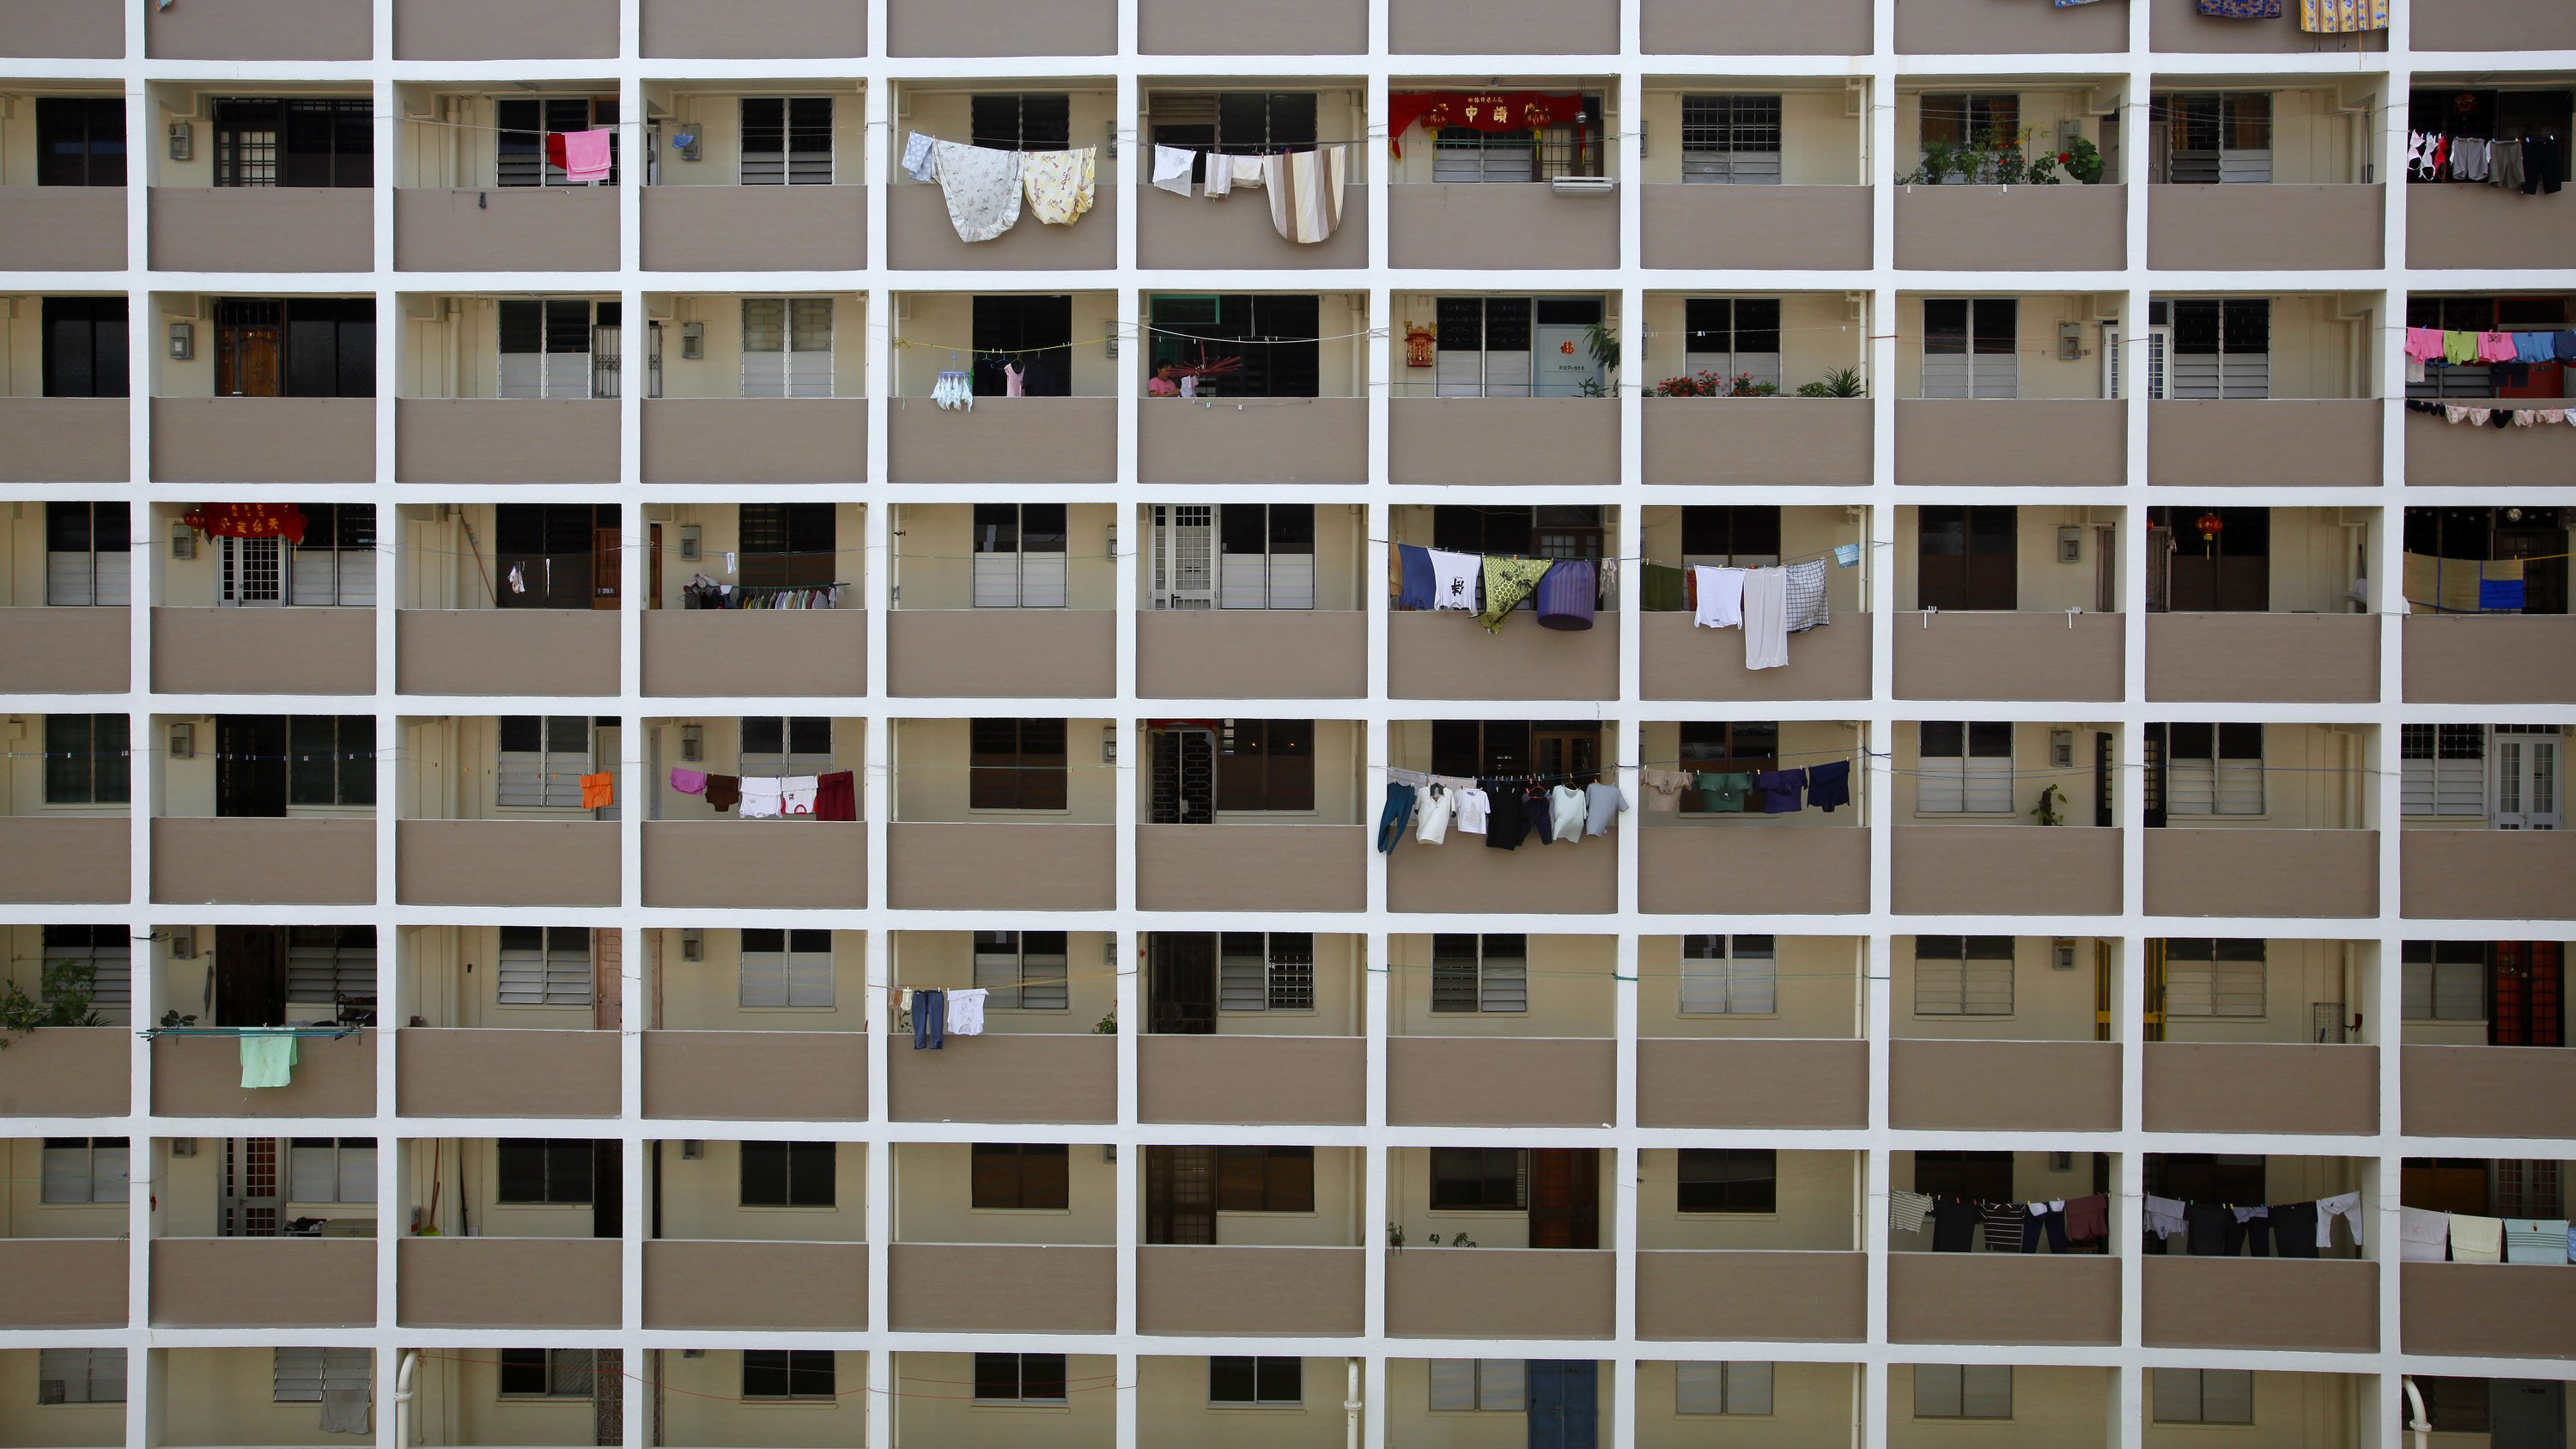 Clothes are hung for drying outside public housing estate flats built by the Housing and Development Board (HDB) at a residential area in Singapore January 6, 2010. Prices of HDB resale flats rose 3.8 per cent in the fourth quarter of 2009 to a record high, according to local media. Around 85 per cent of Singaporeans live in HDB flats.